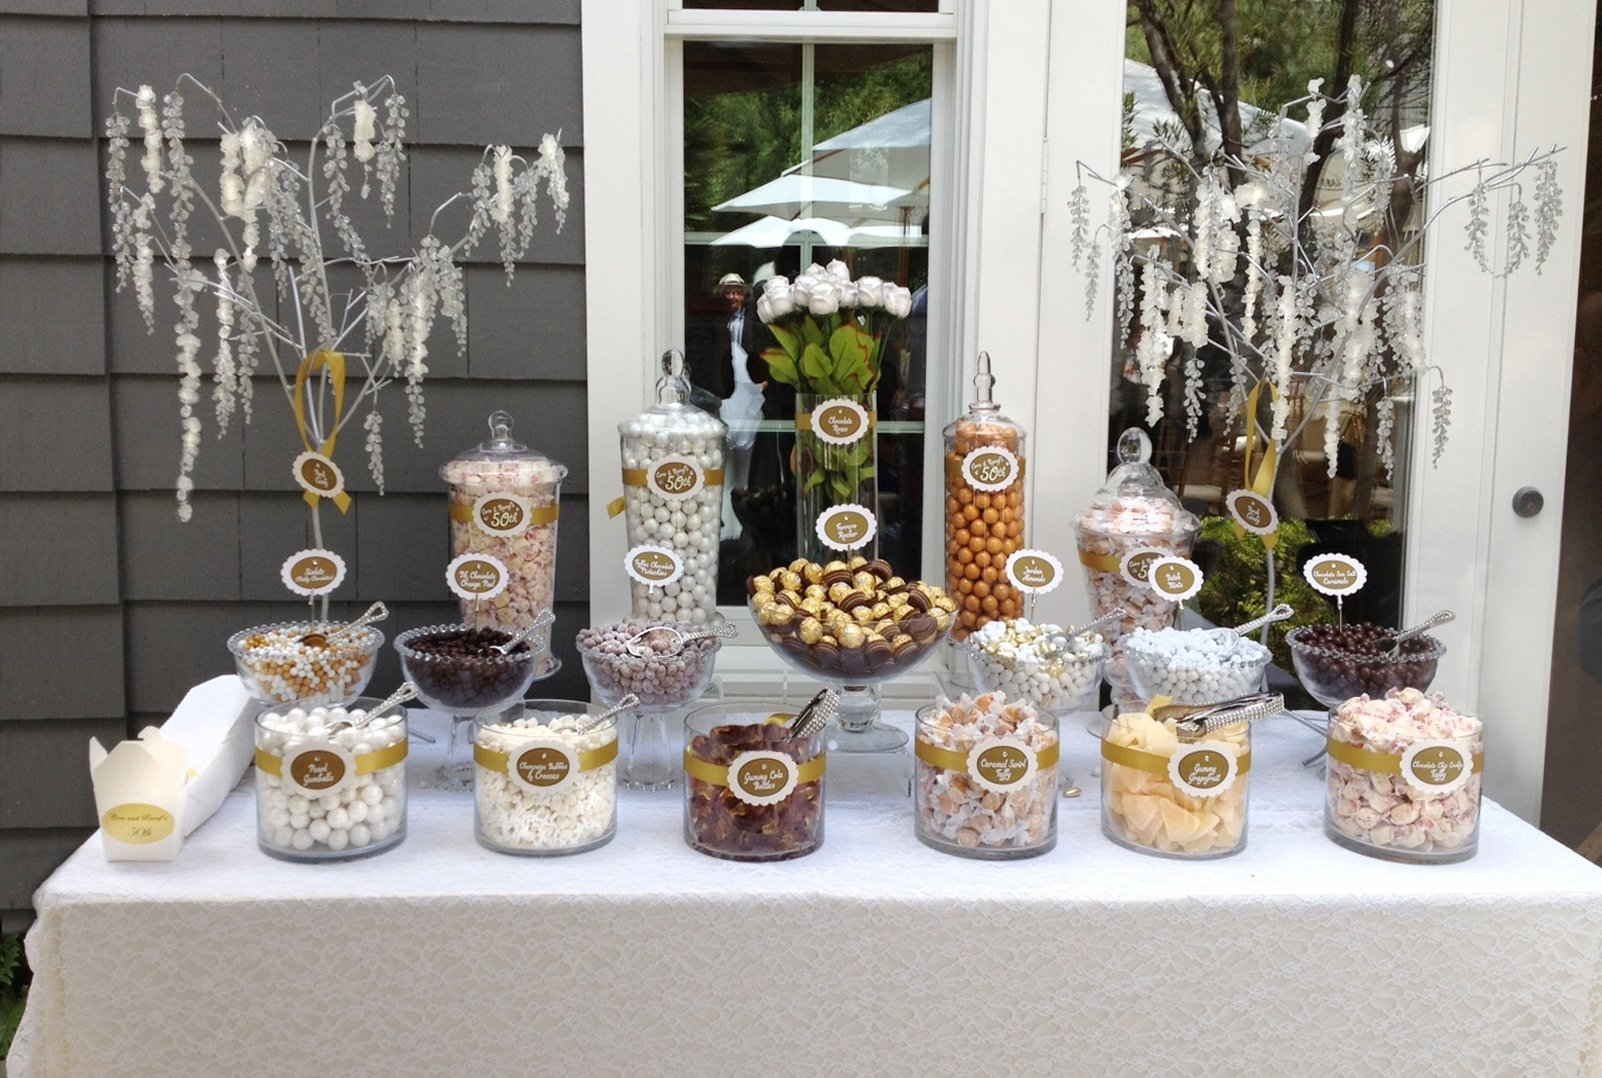 10 Lovable 50Th Wedding Anniversary Decorating Ideas a neutral candy buffet i made for a fun but upscale 50th wedding 1 2020